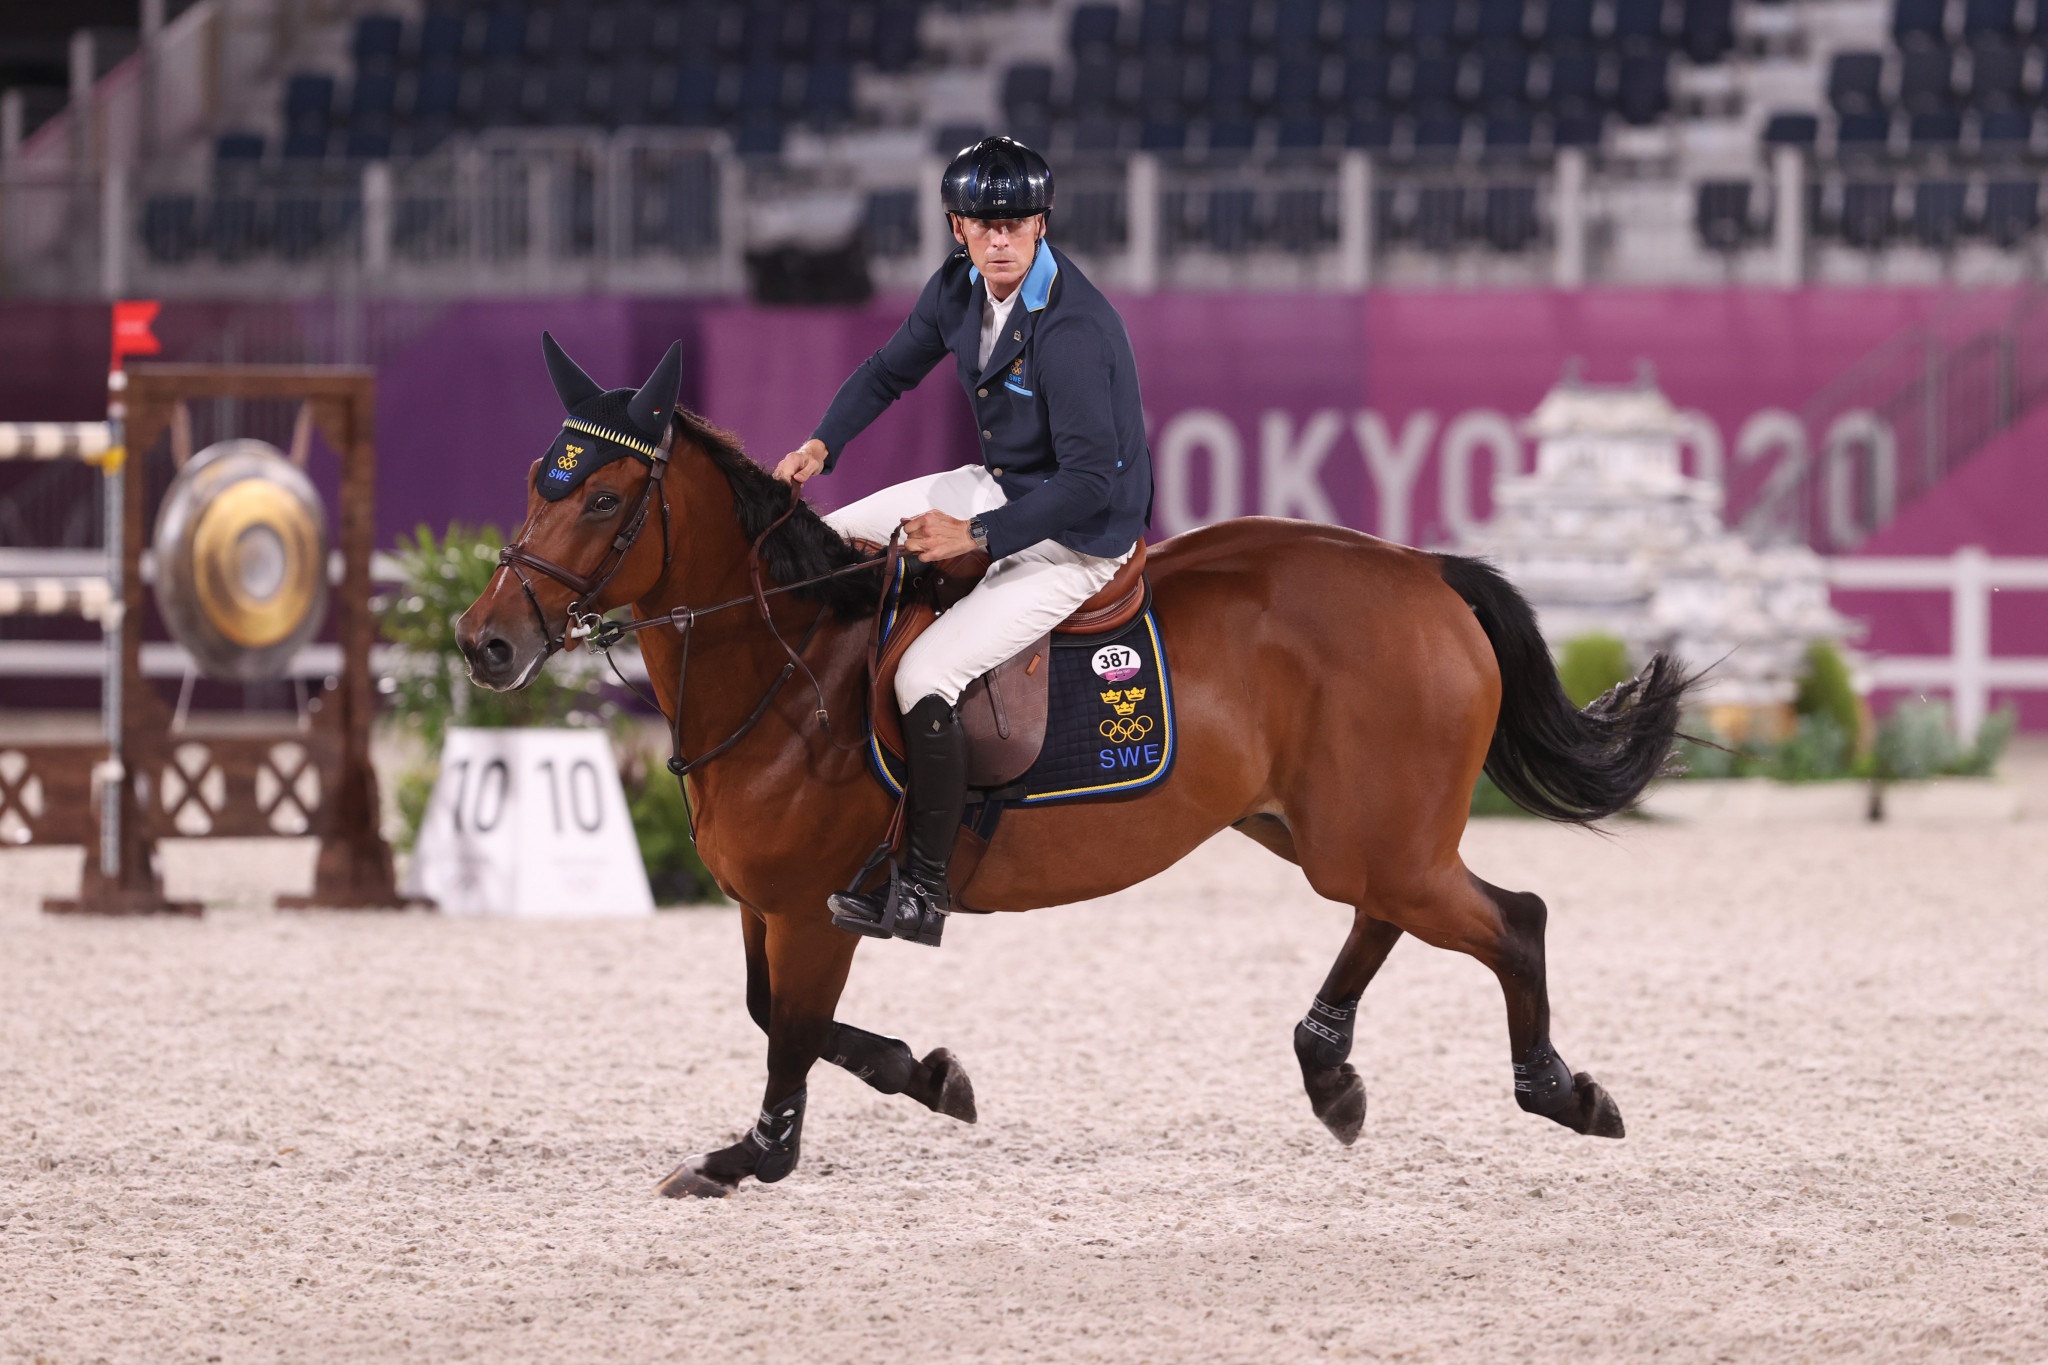 Olympic gold medallist in the team event Peder Fredricson is one of several riders who can move above the absent Max Kühner into the season's top three in Rome ©Getty Images